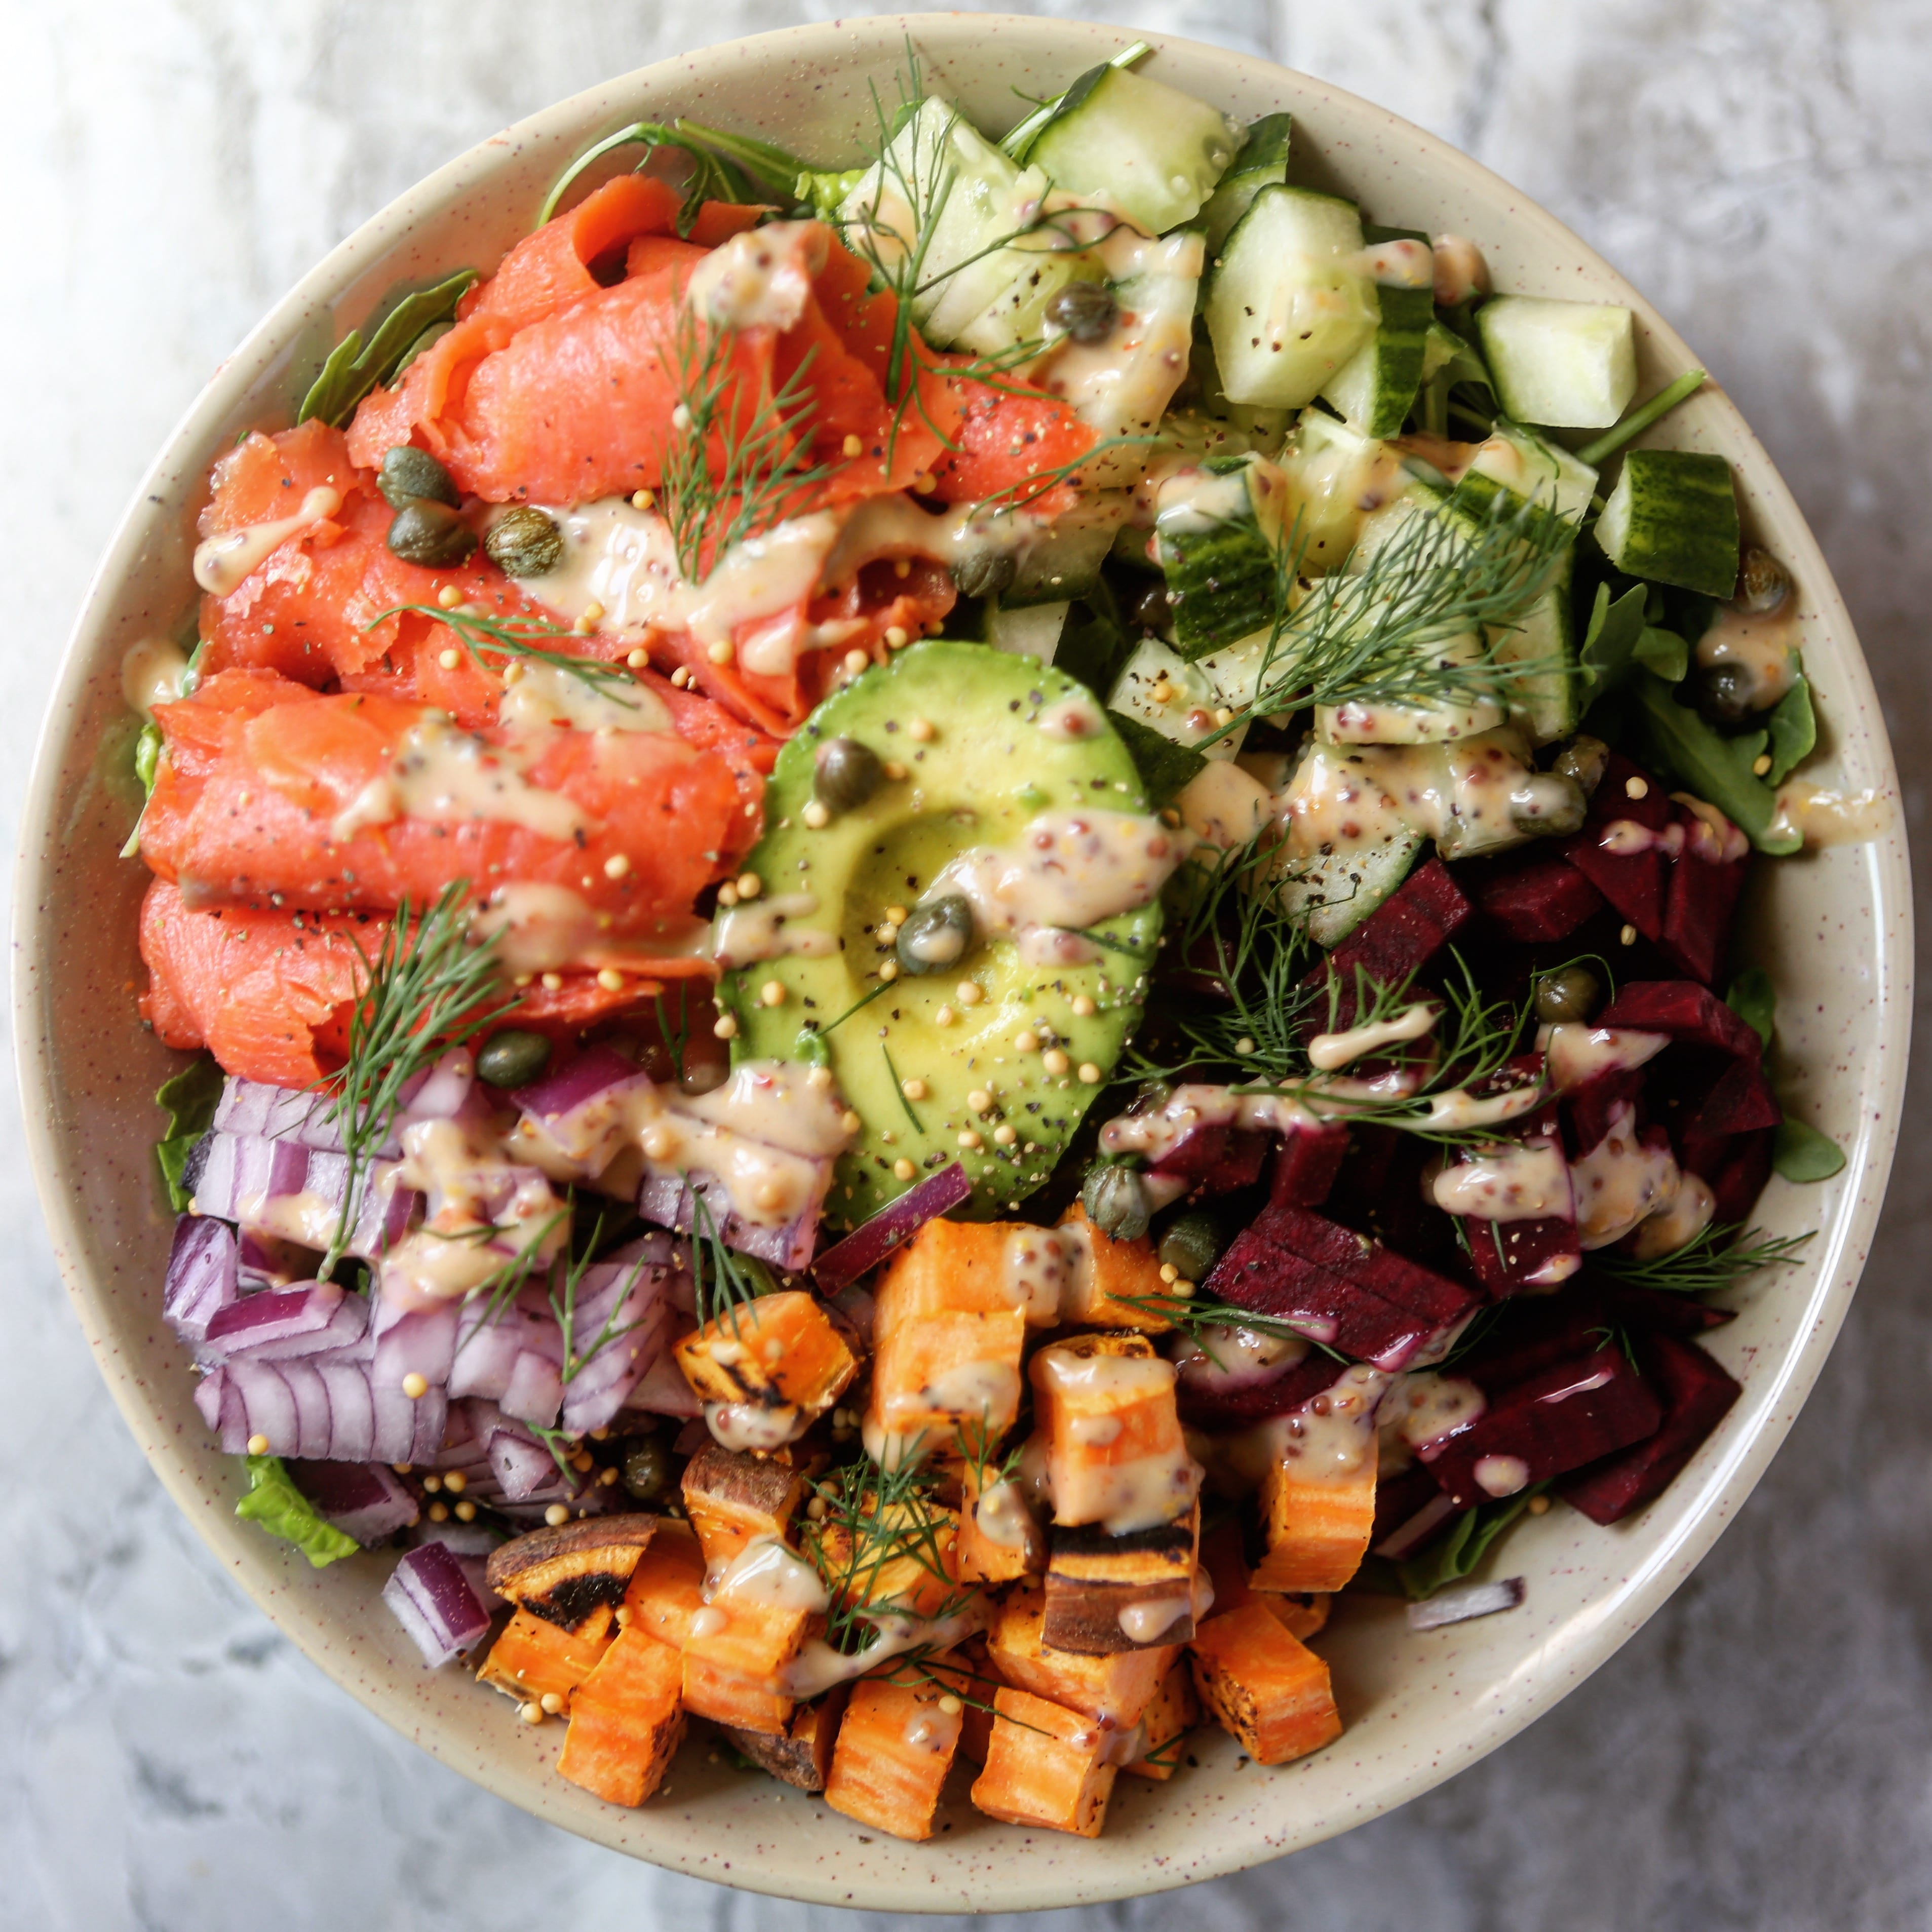 Smoked Salmon Salad with Spicy Mustard Dressing!